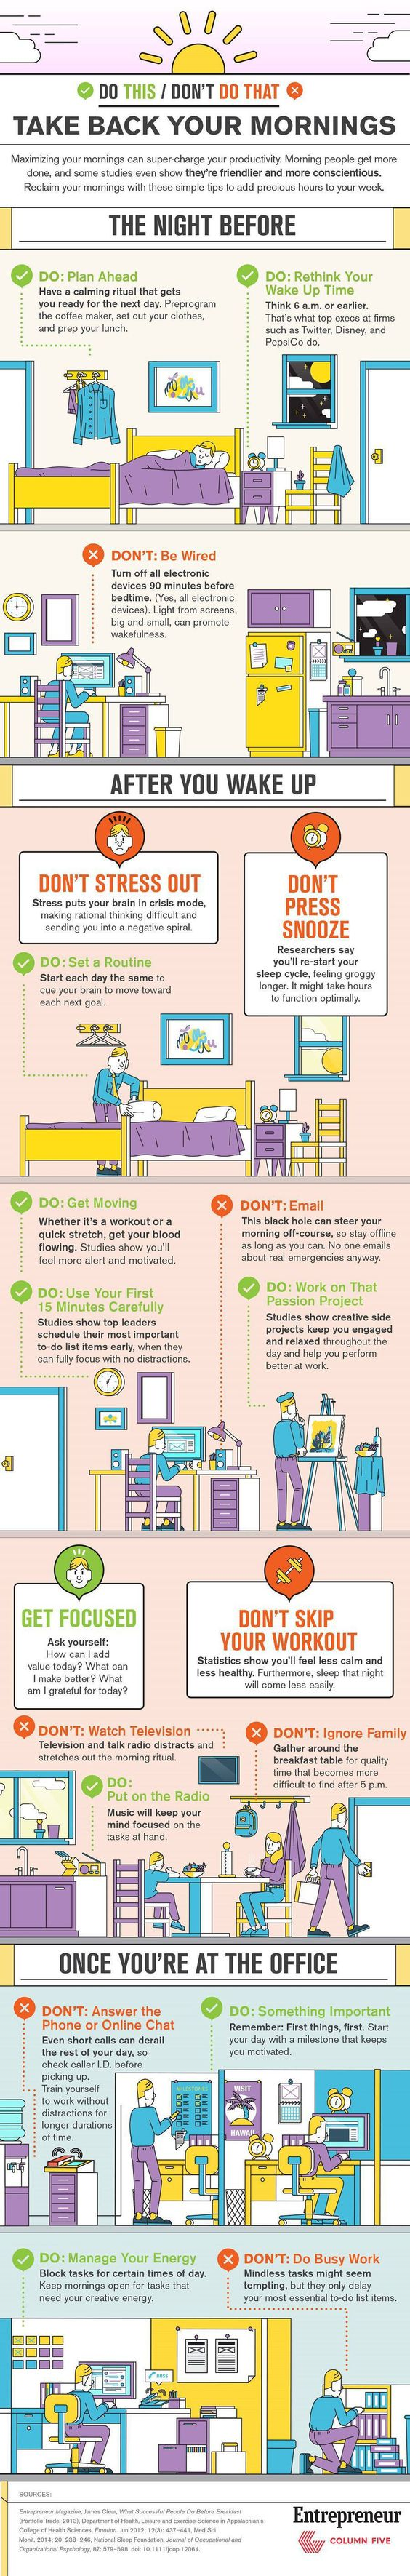 Follow these proven tips and learn how to be a morning person. Stop struggling in the morning and boost your energy for the whole day.